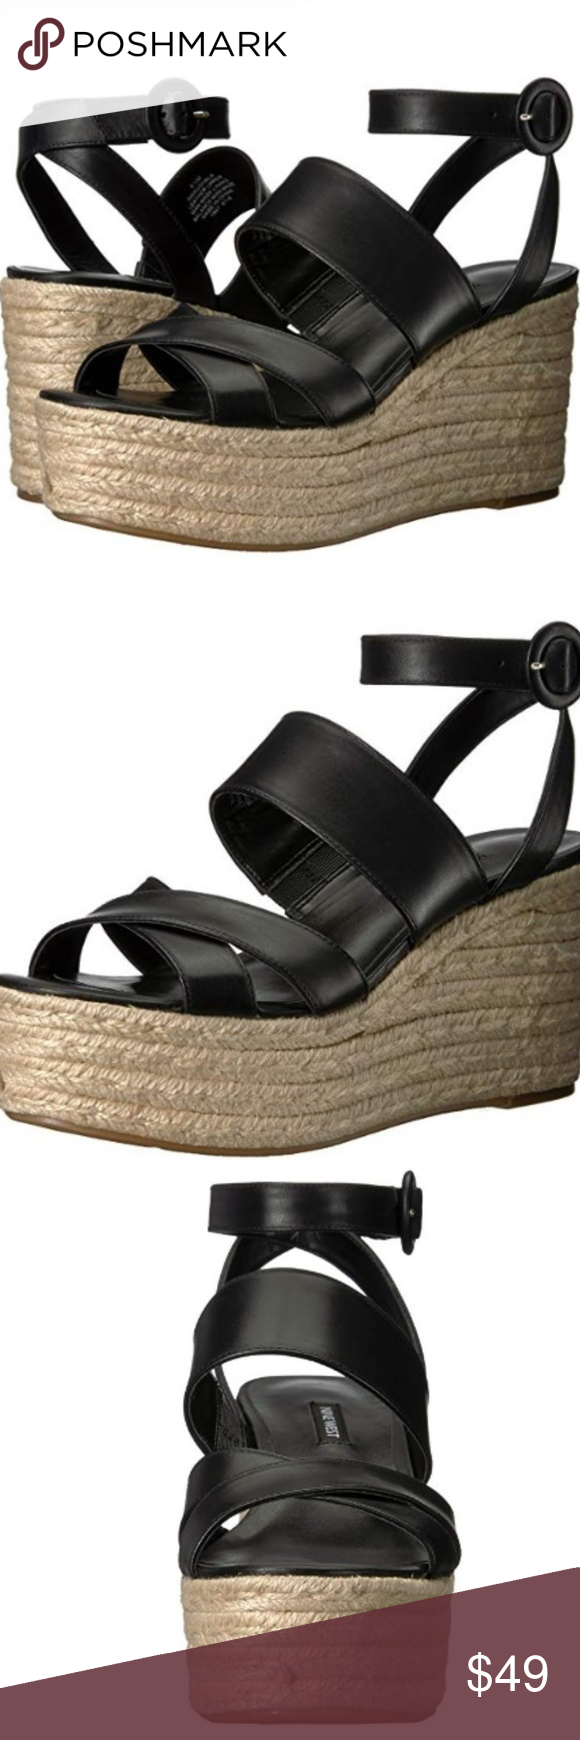 386a167f737 Nine West Kushala Leather Wedge Sandals Size 6.5M Leather New in box Size  6.5M Synthetic sole Platform measures approximately 2 inches Wedge Sandal  Women s ...